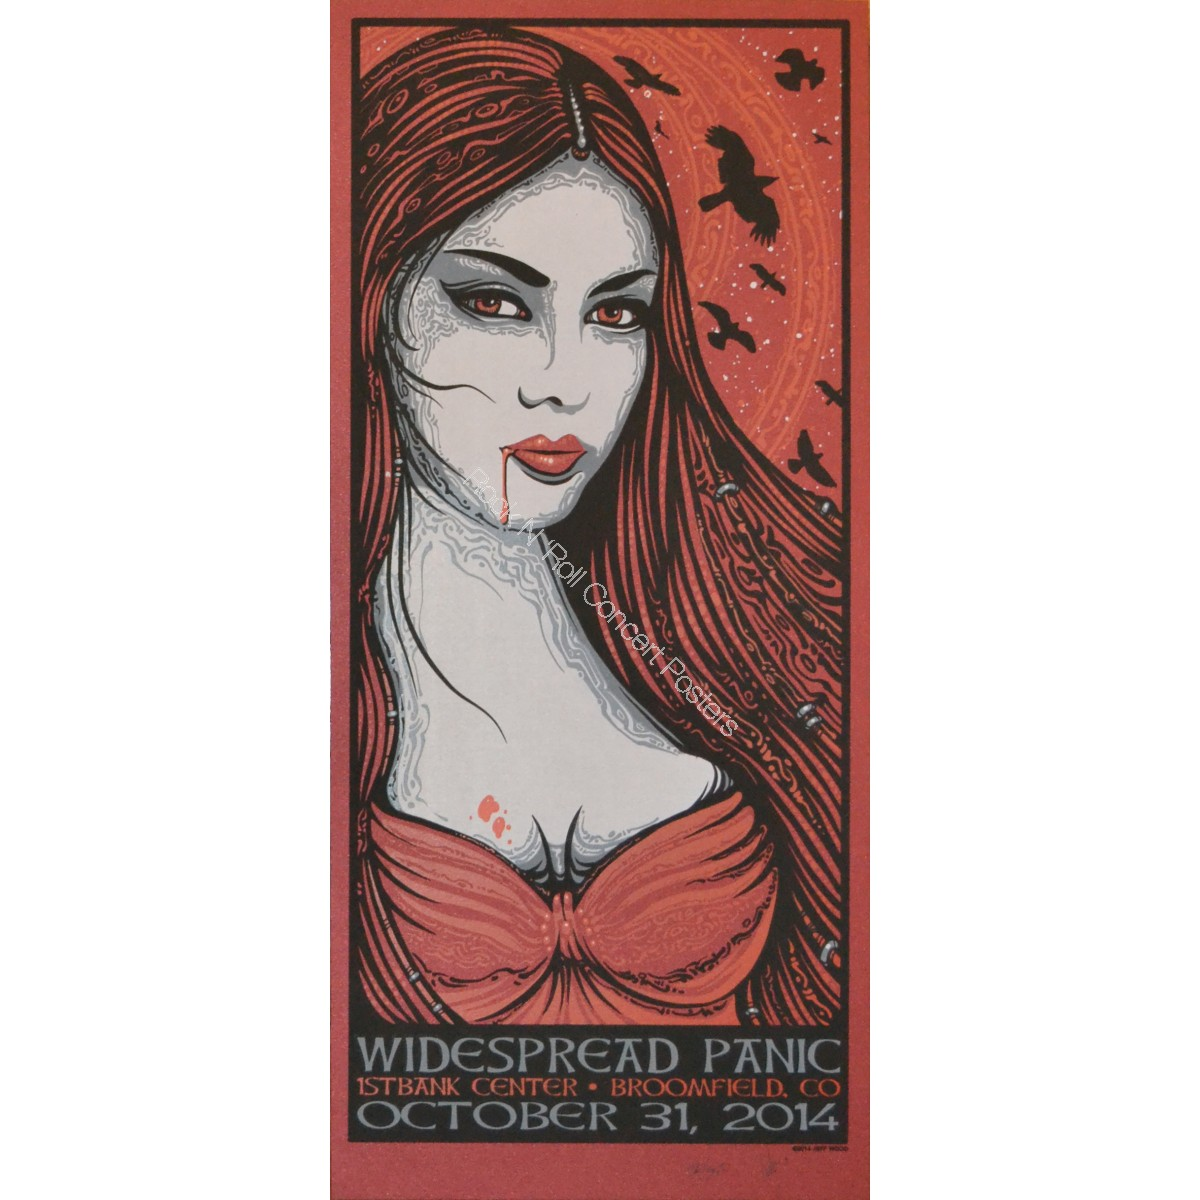 Widespread Panic Halloween 10/31/14 1st Bank Center Broomfield Colorado Official Show Edition Print By Wood